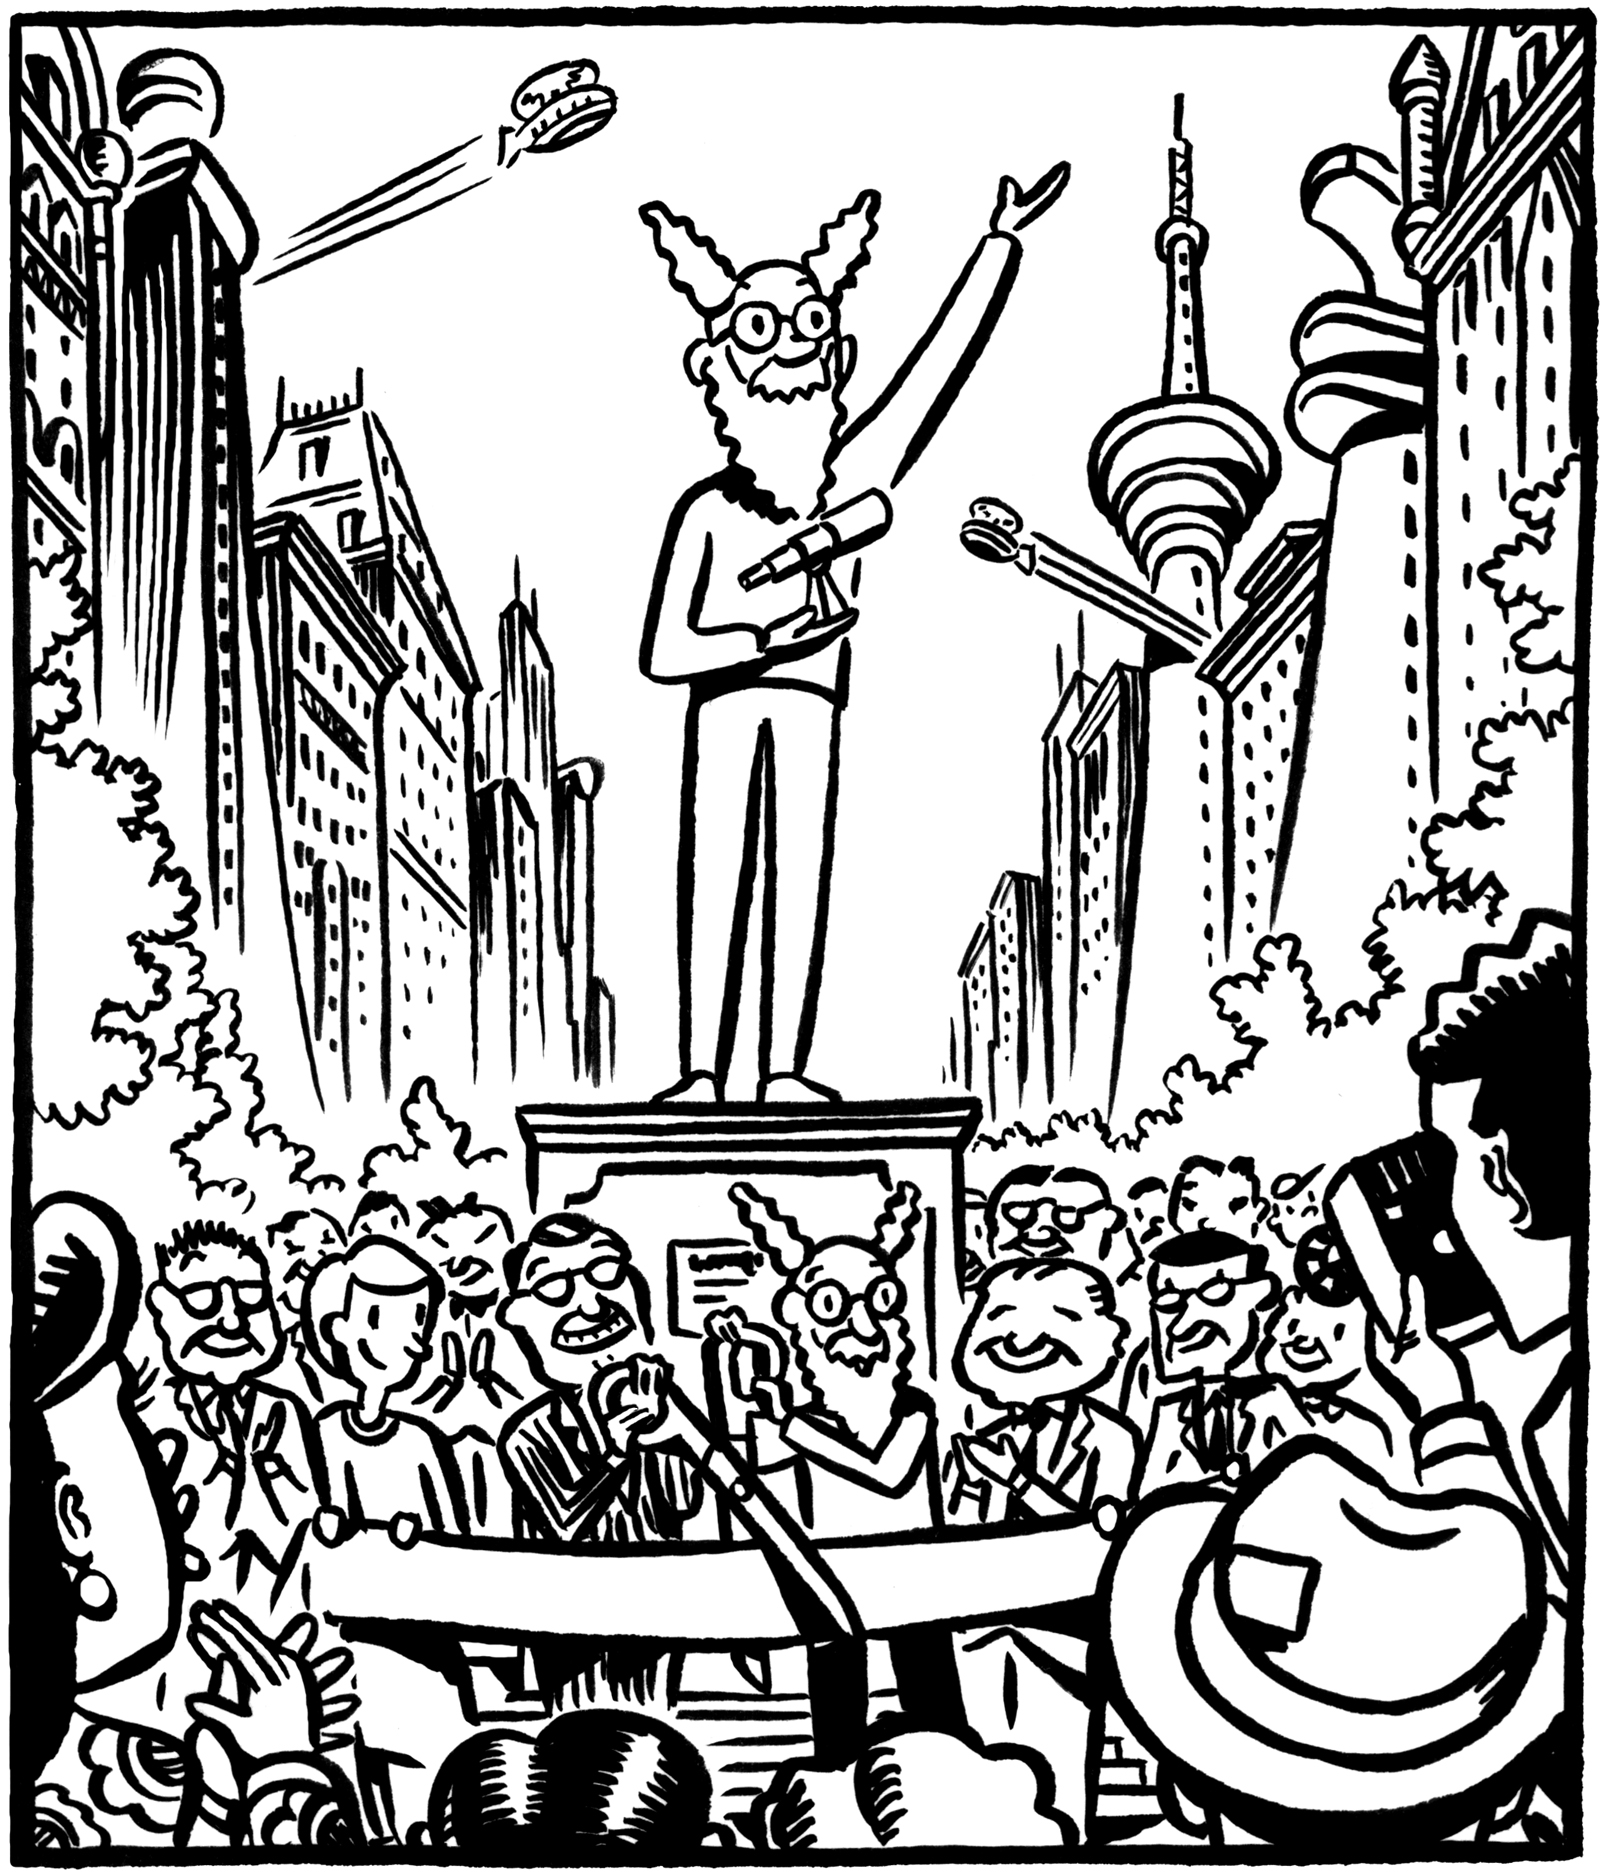 Panel from Nimbus and the Amazing Spectacles.